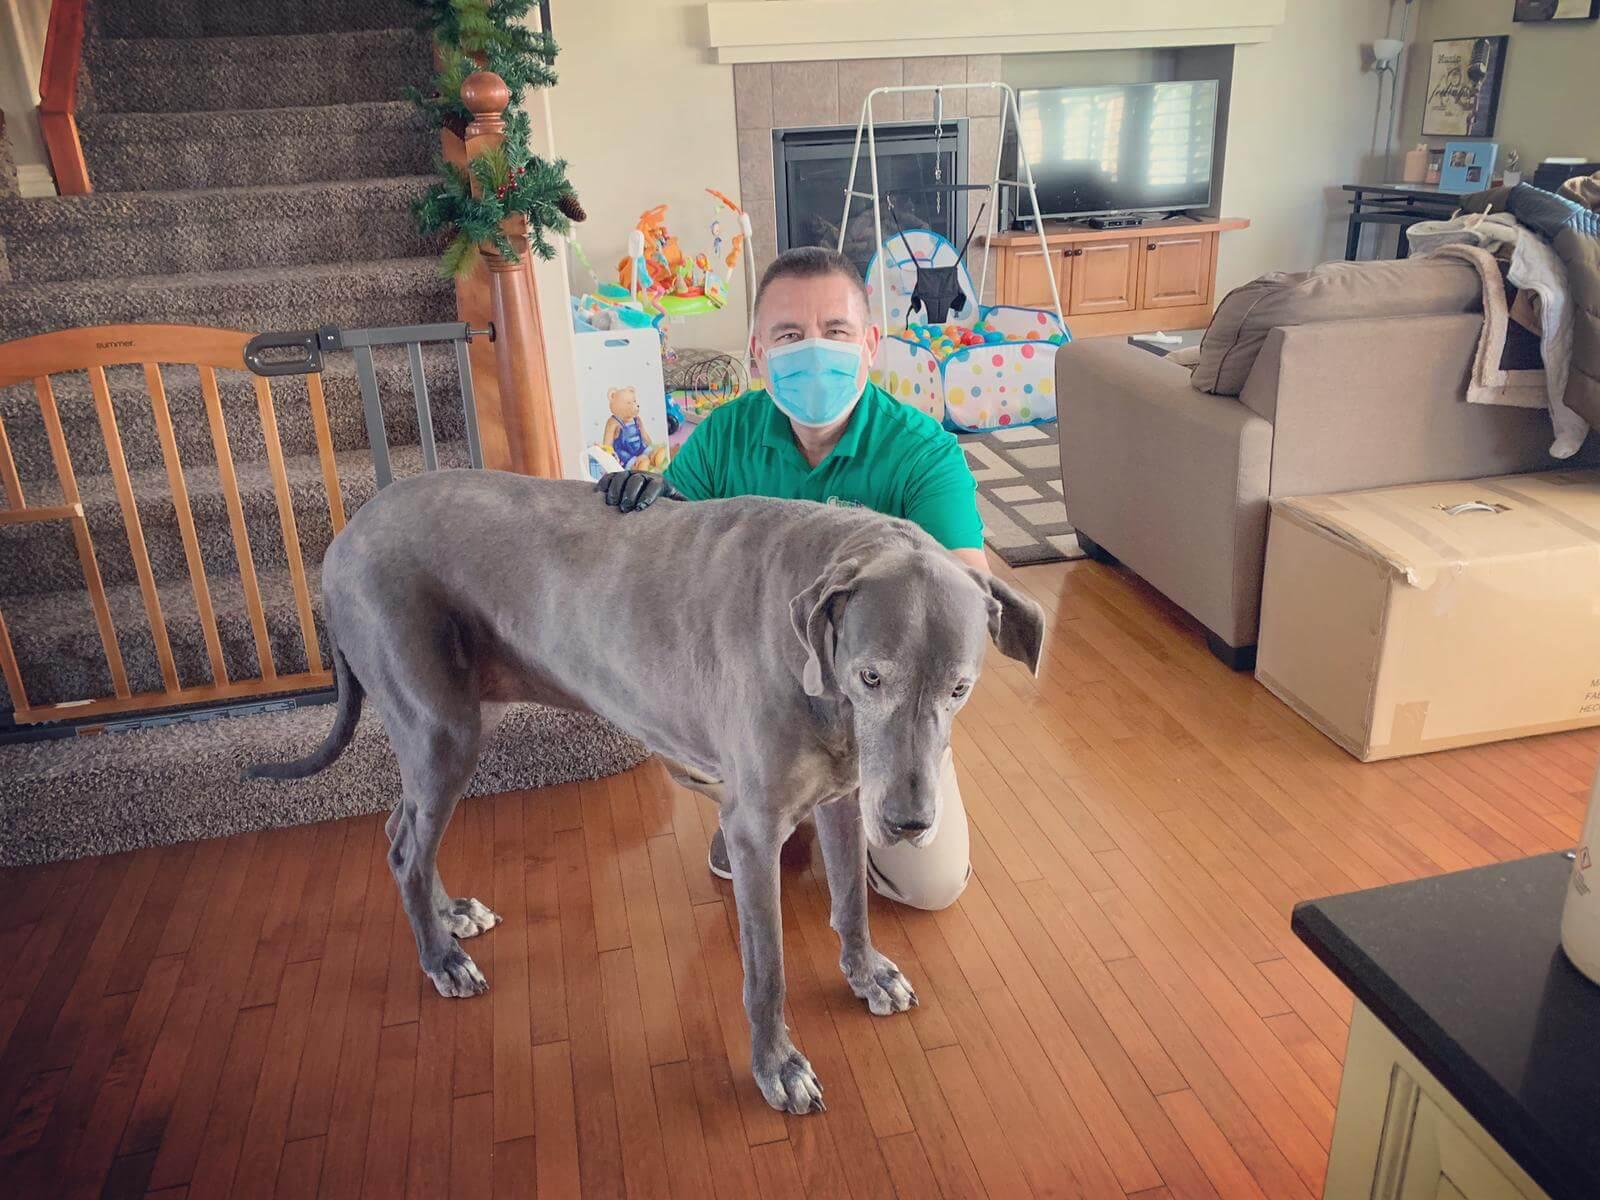 carpet cleaners & Pet Stain removal expert in calgary, ab